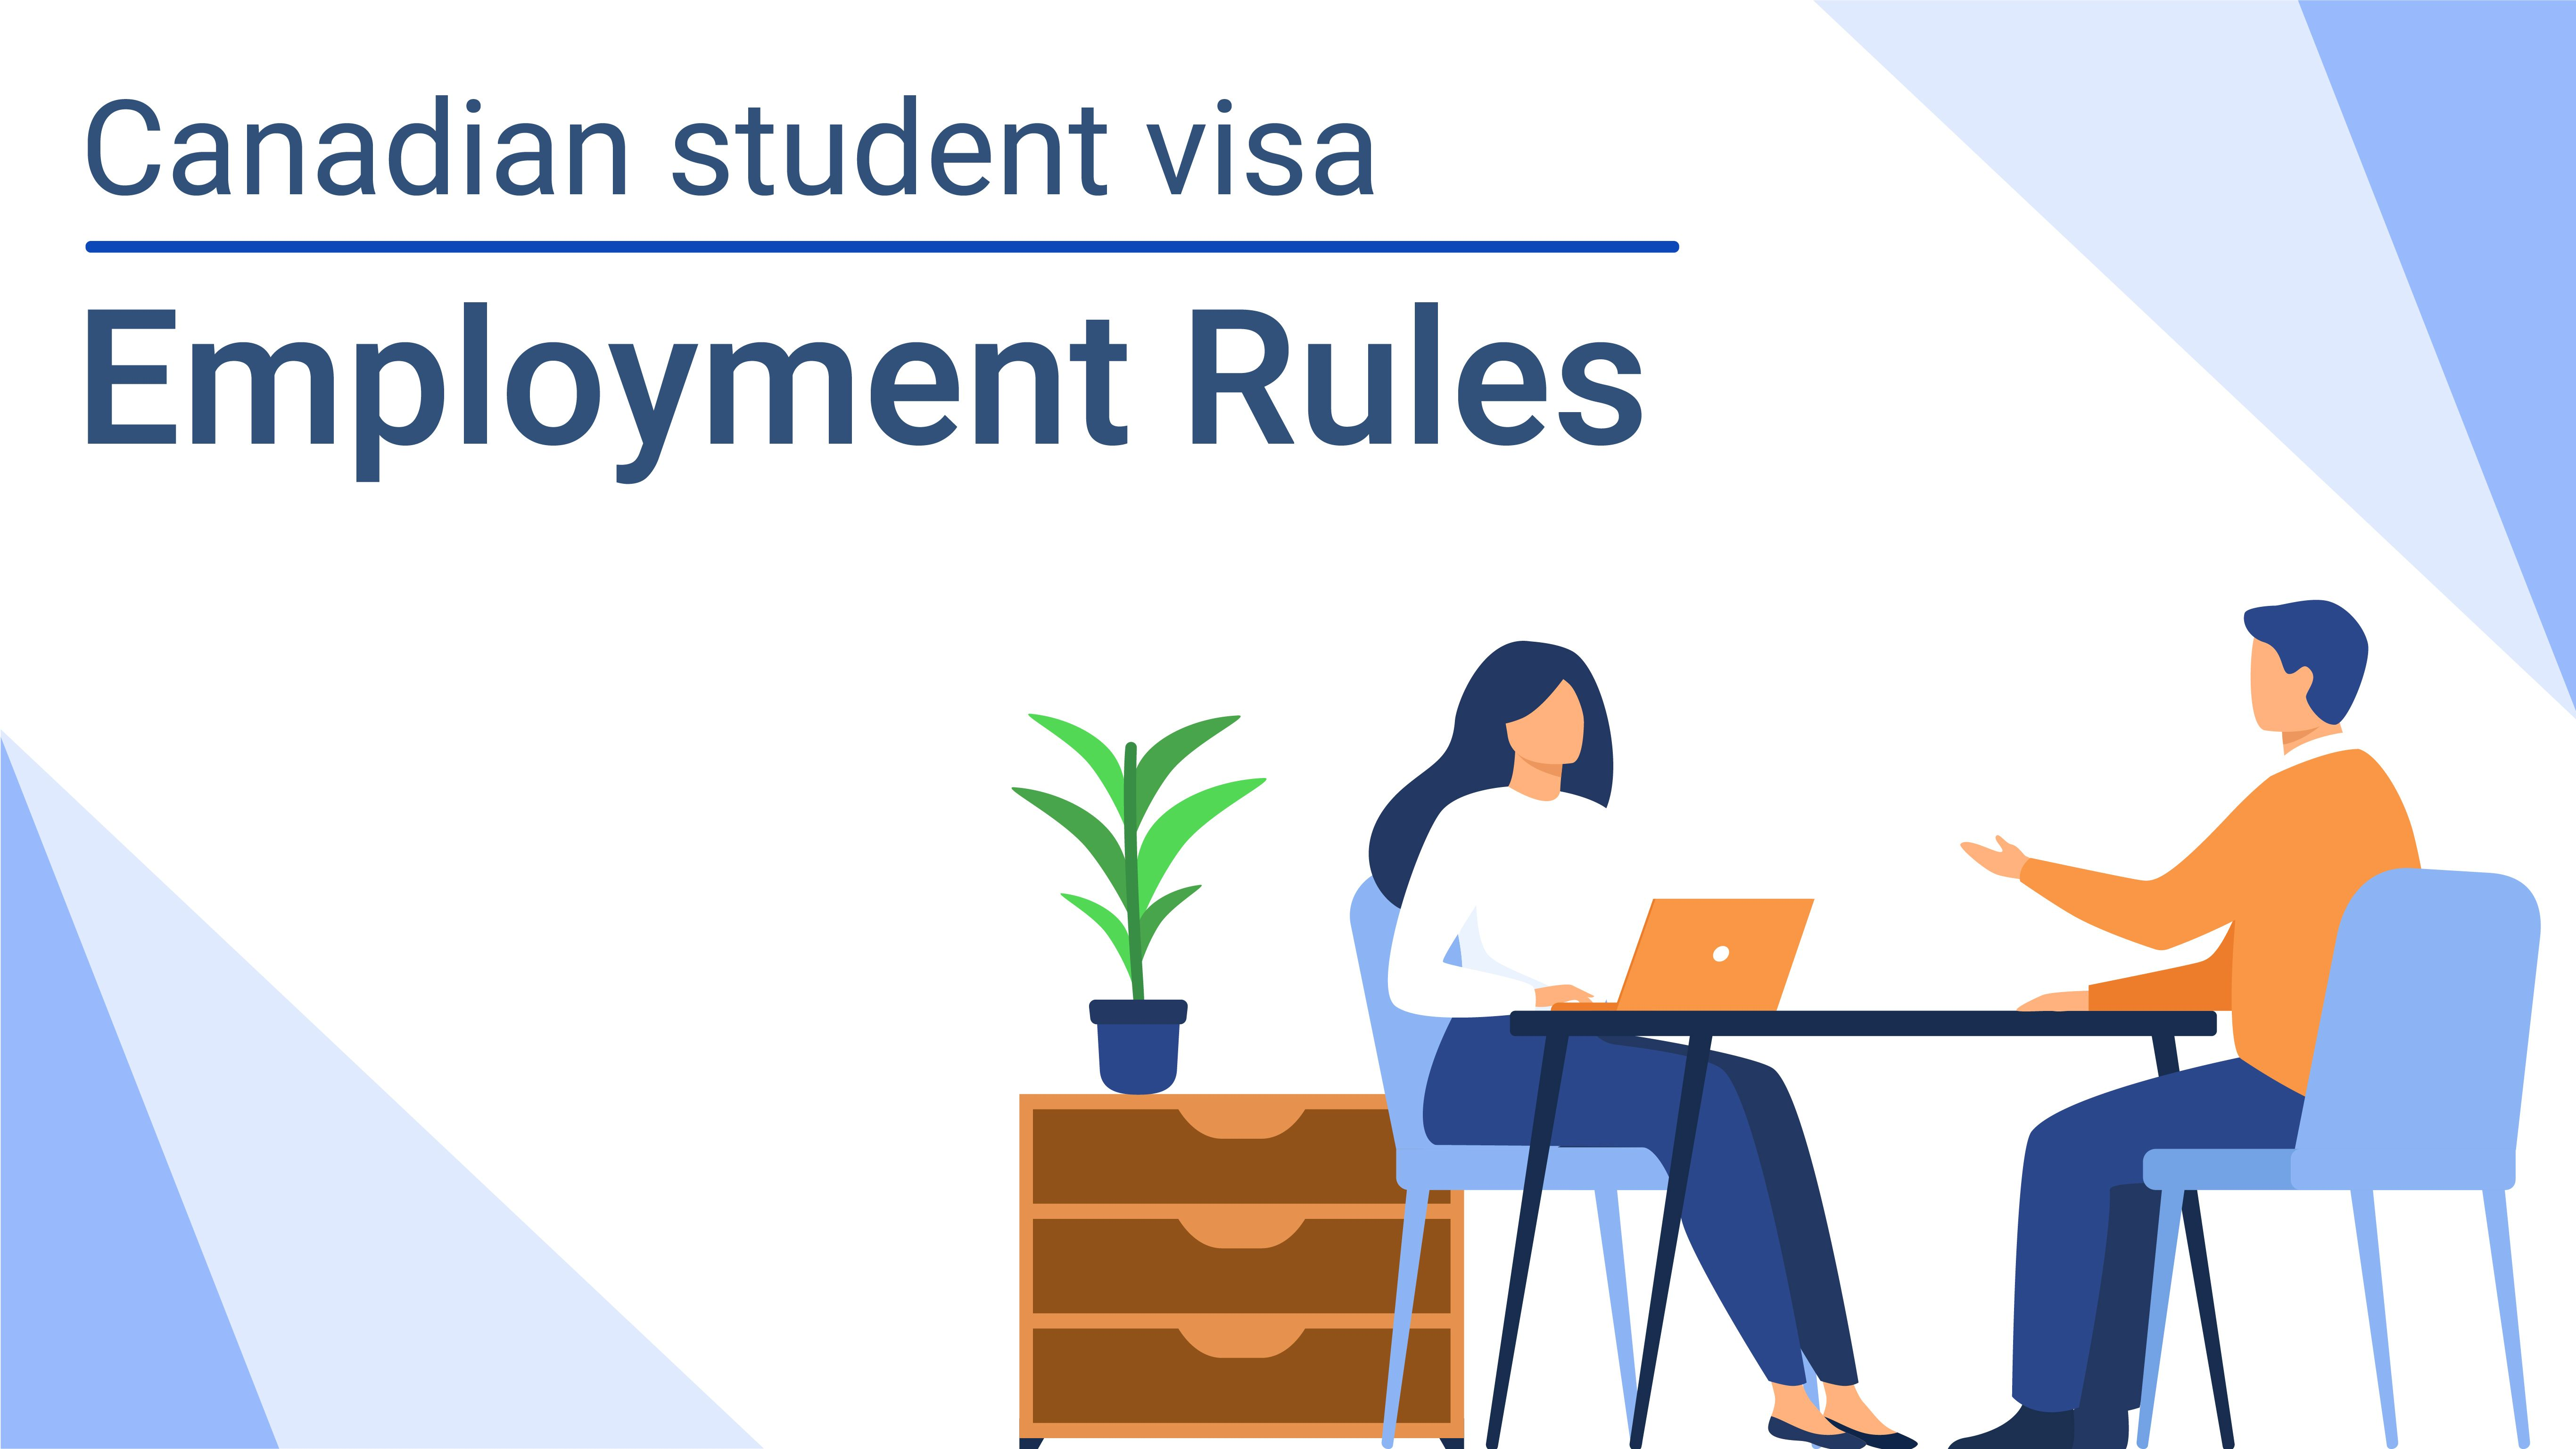 Rules for Employment Under Canadian Student Visas